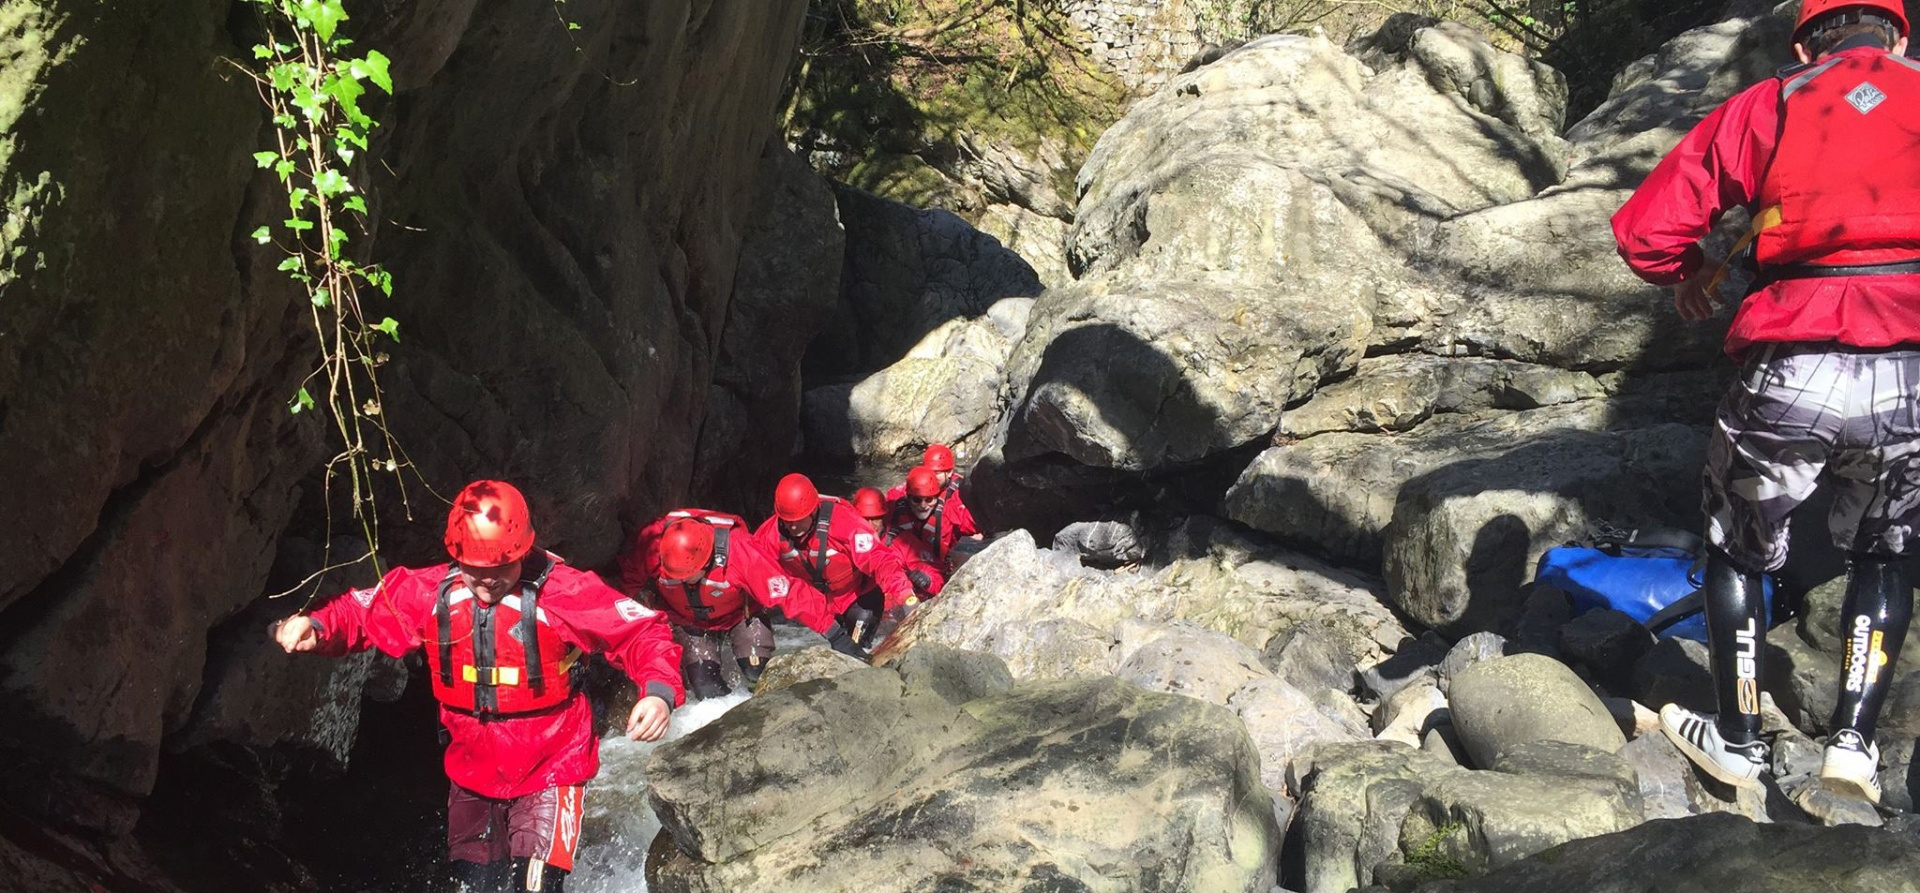 Gorge Walking Adventure for Two in Glamorgan - Full Day-5